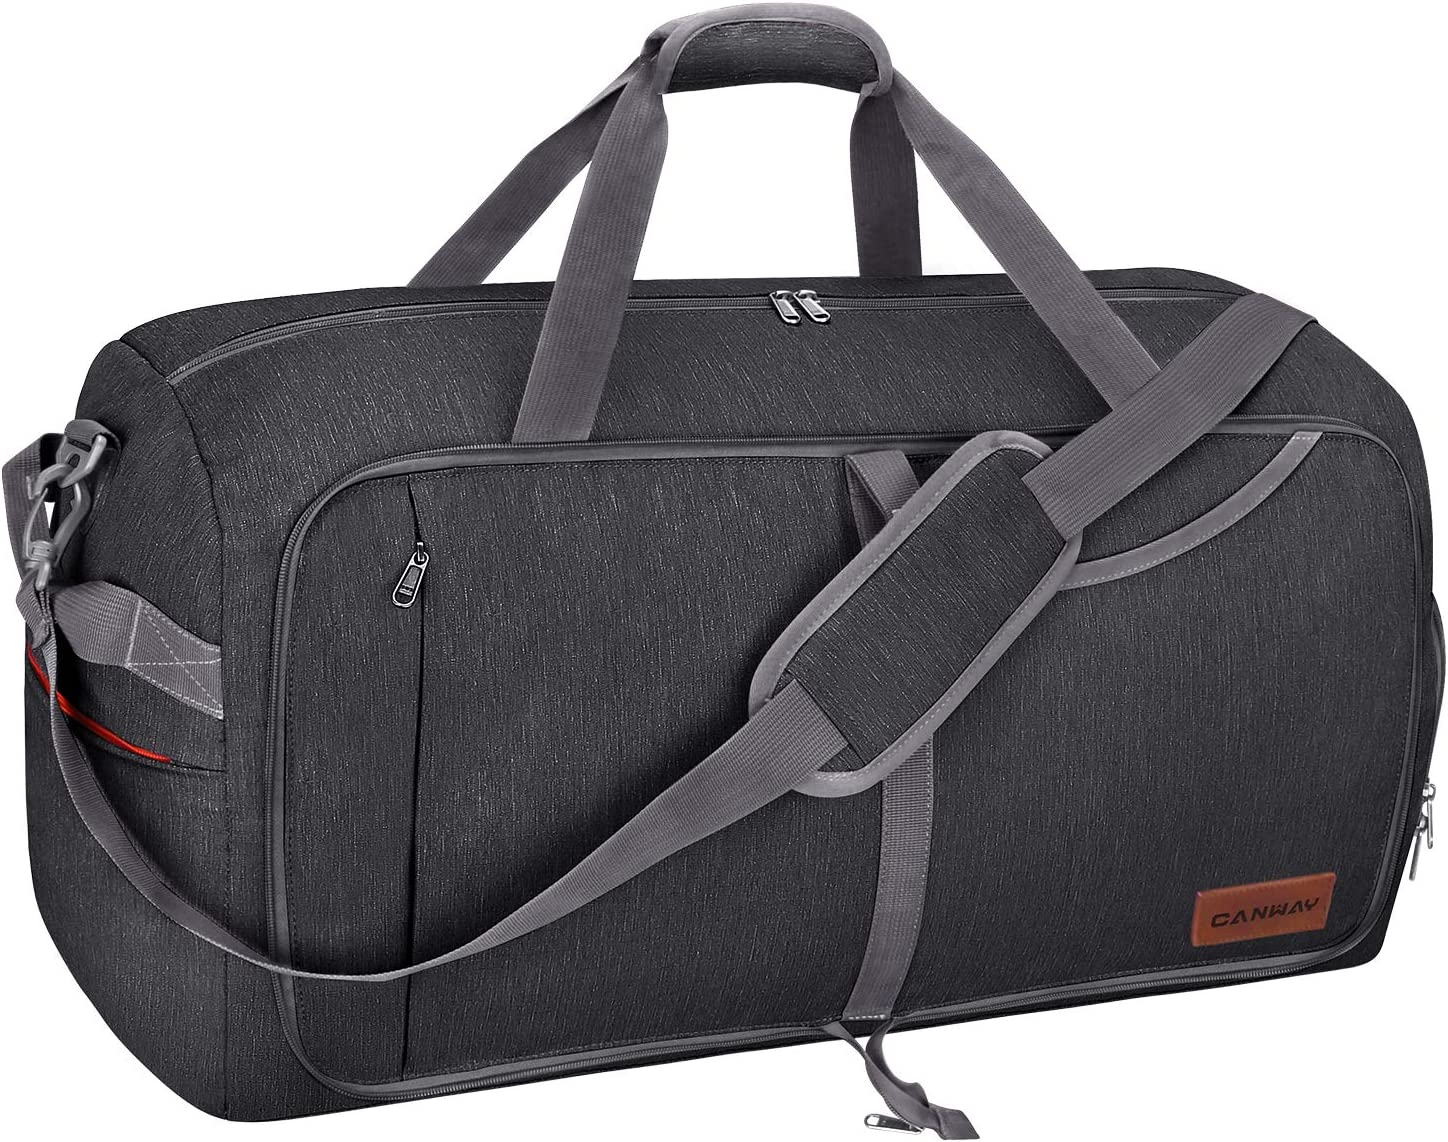 Mail order Canway 115L Travel Duffel Bag Foldable with sale Weekender Shoes